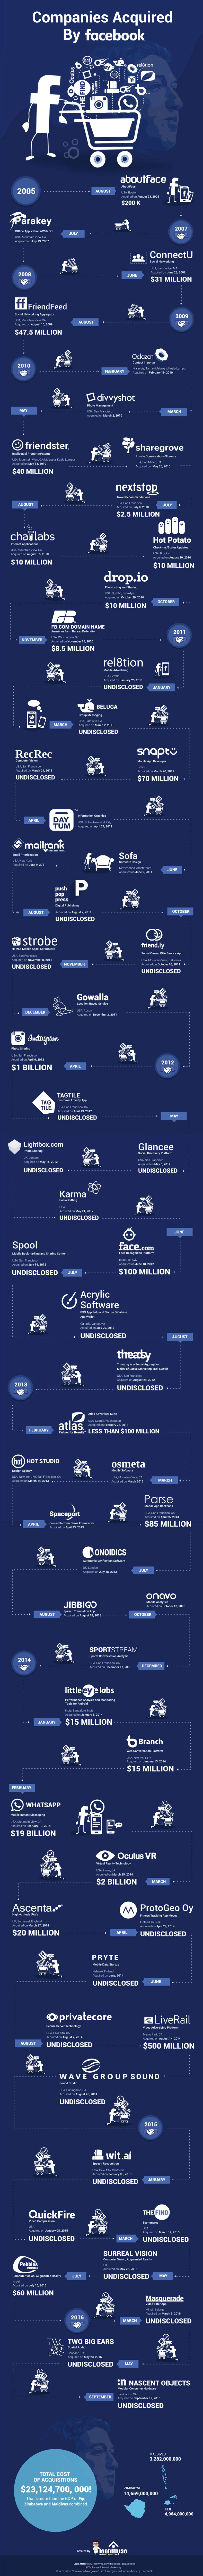 Facebook List of Companies Owned Infographic